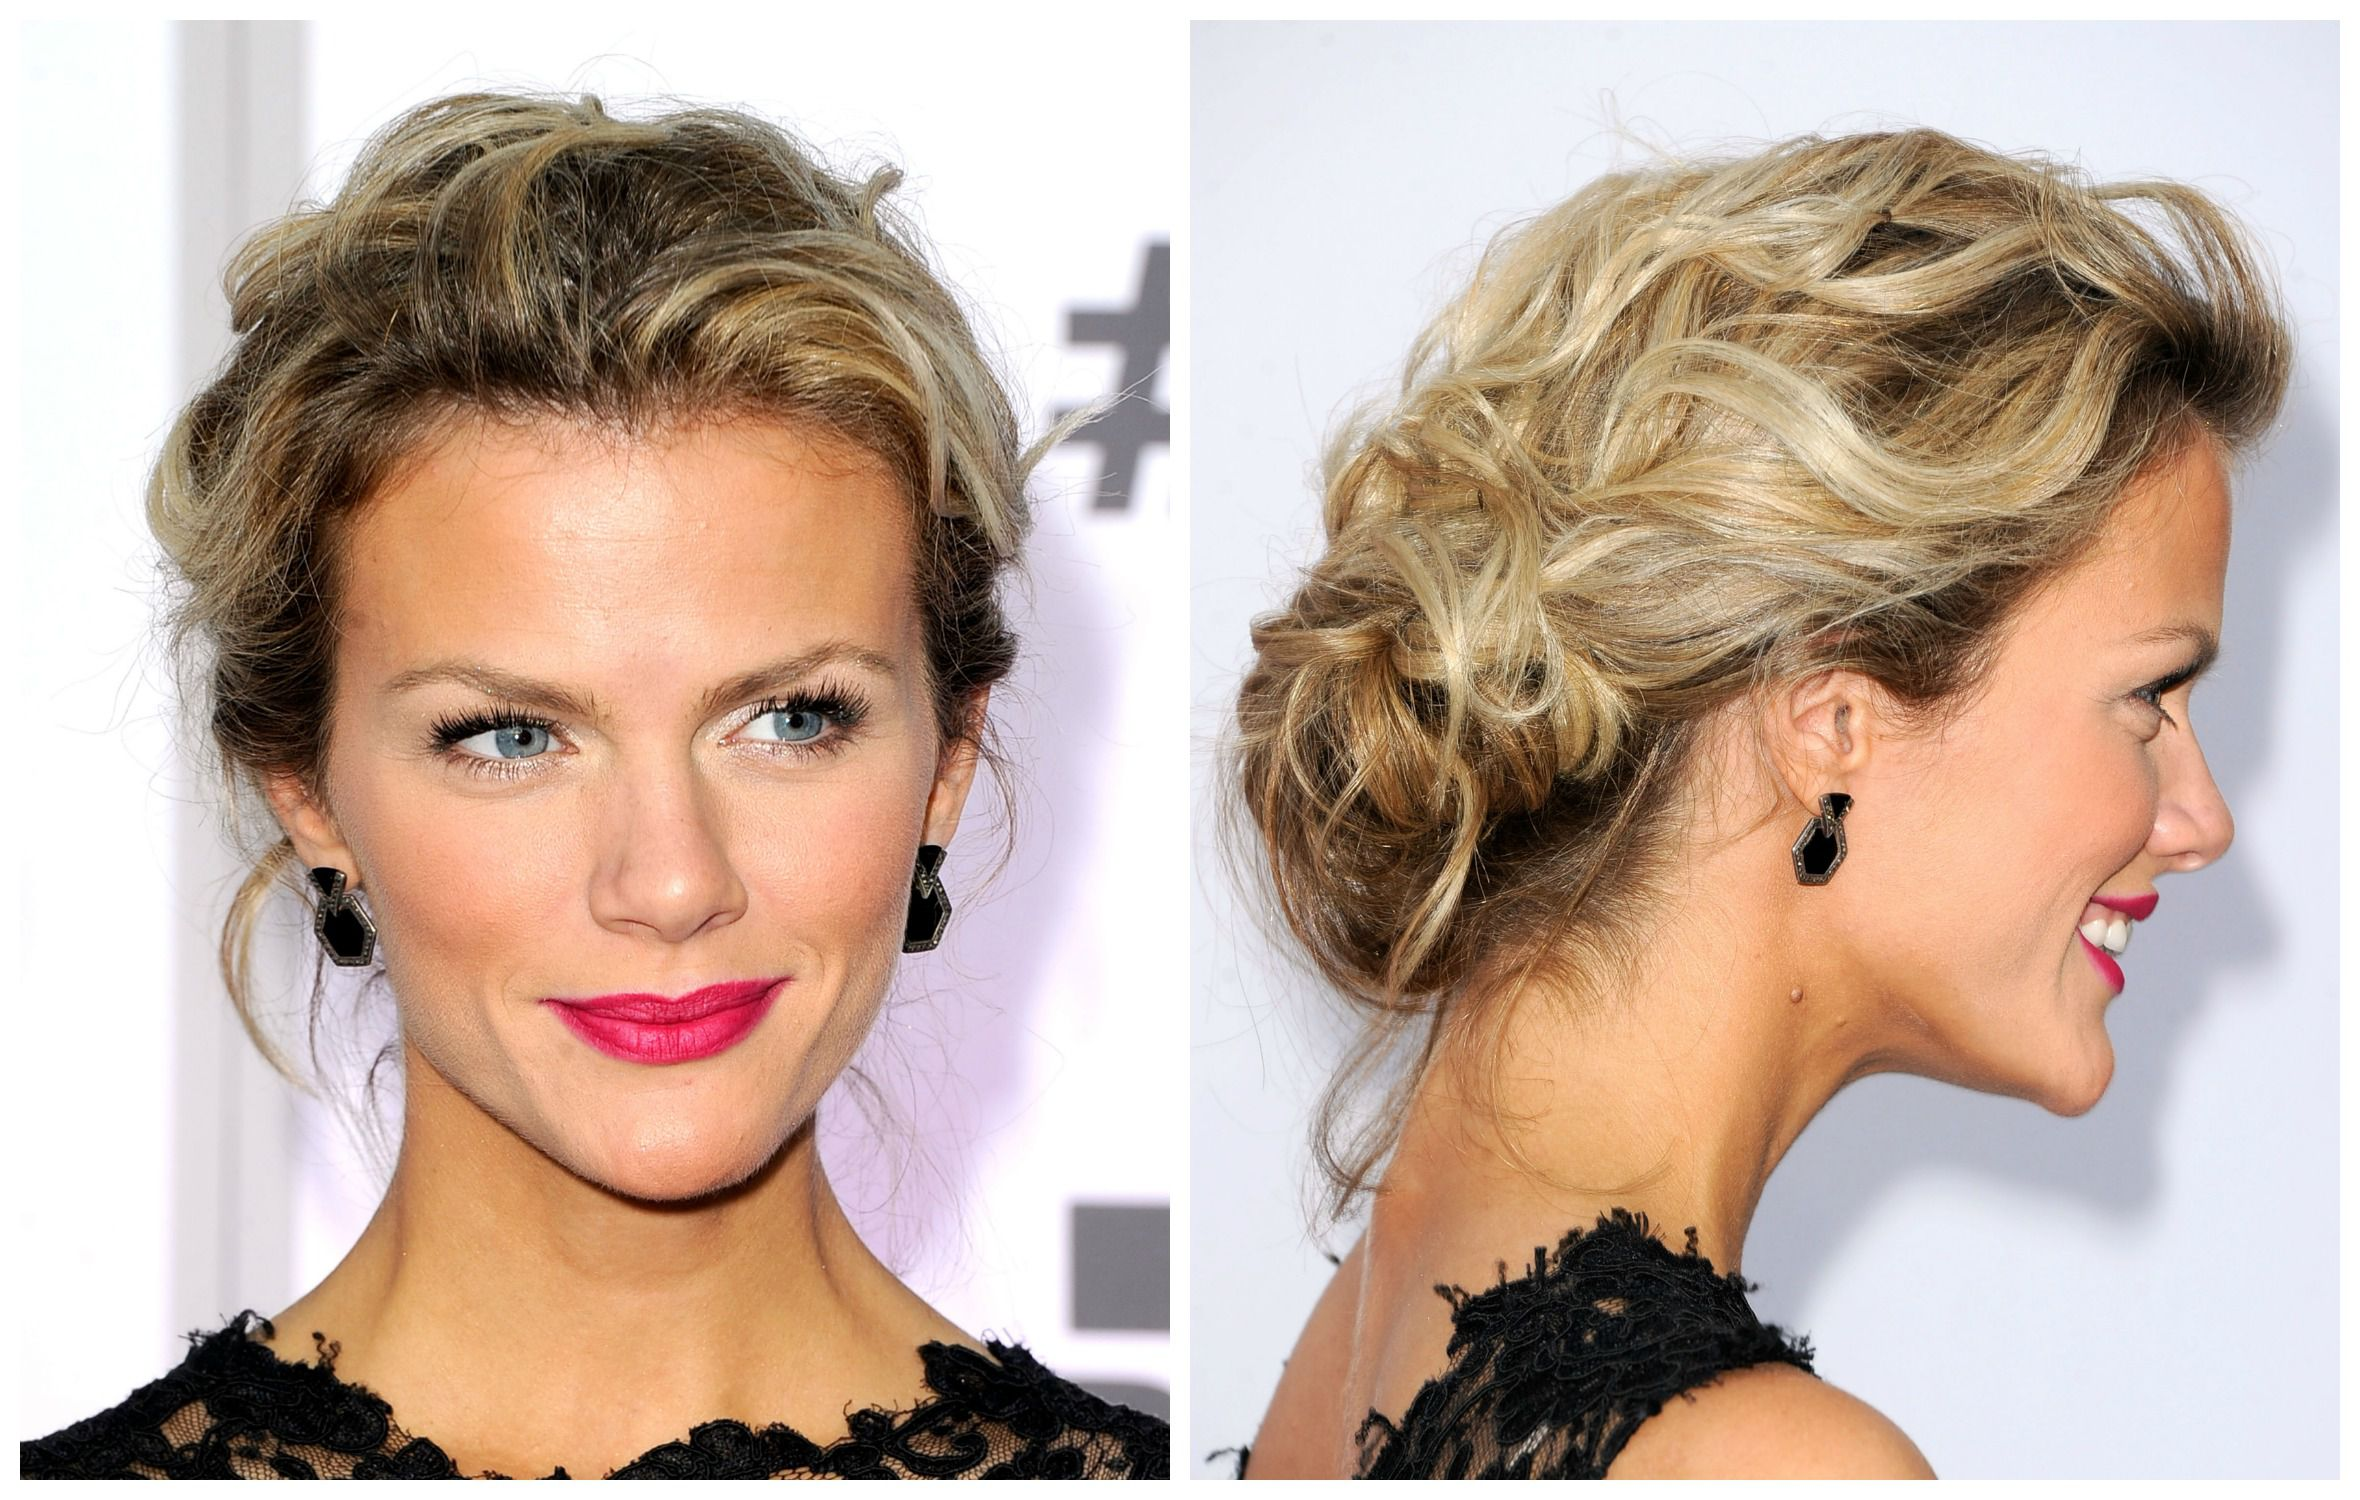 Hair Styles Updo: Messy Updos: The Top Casual Prom Hairstyles